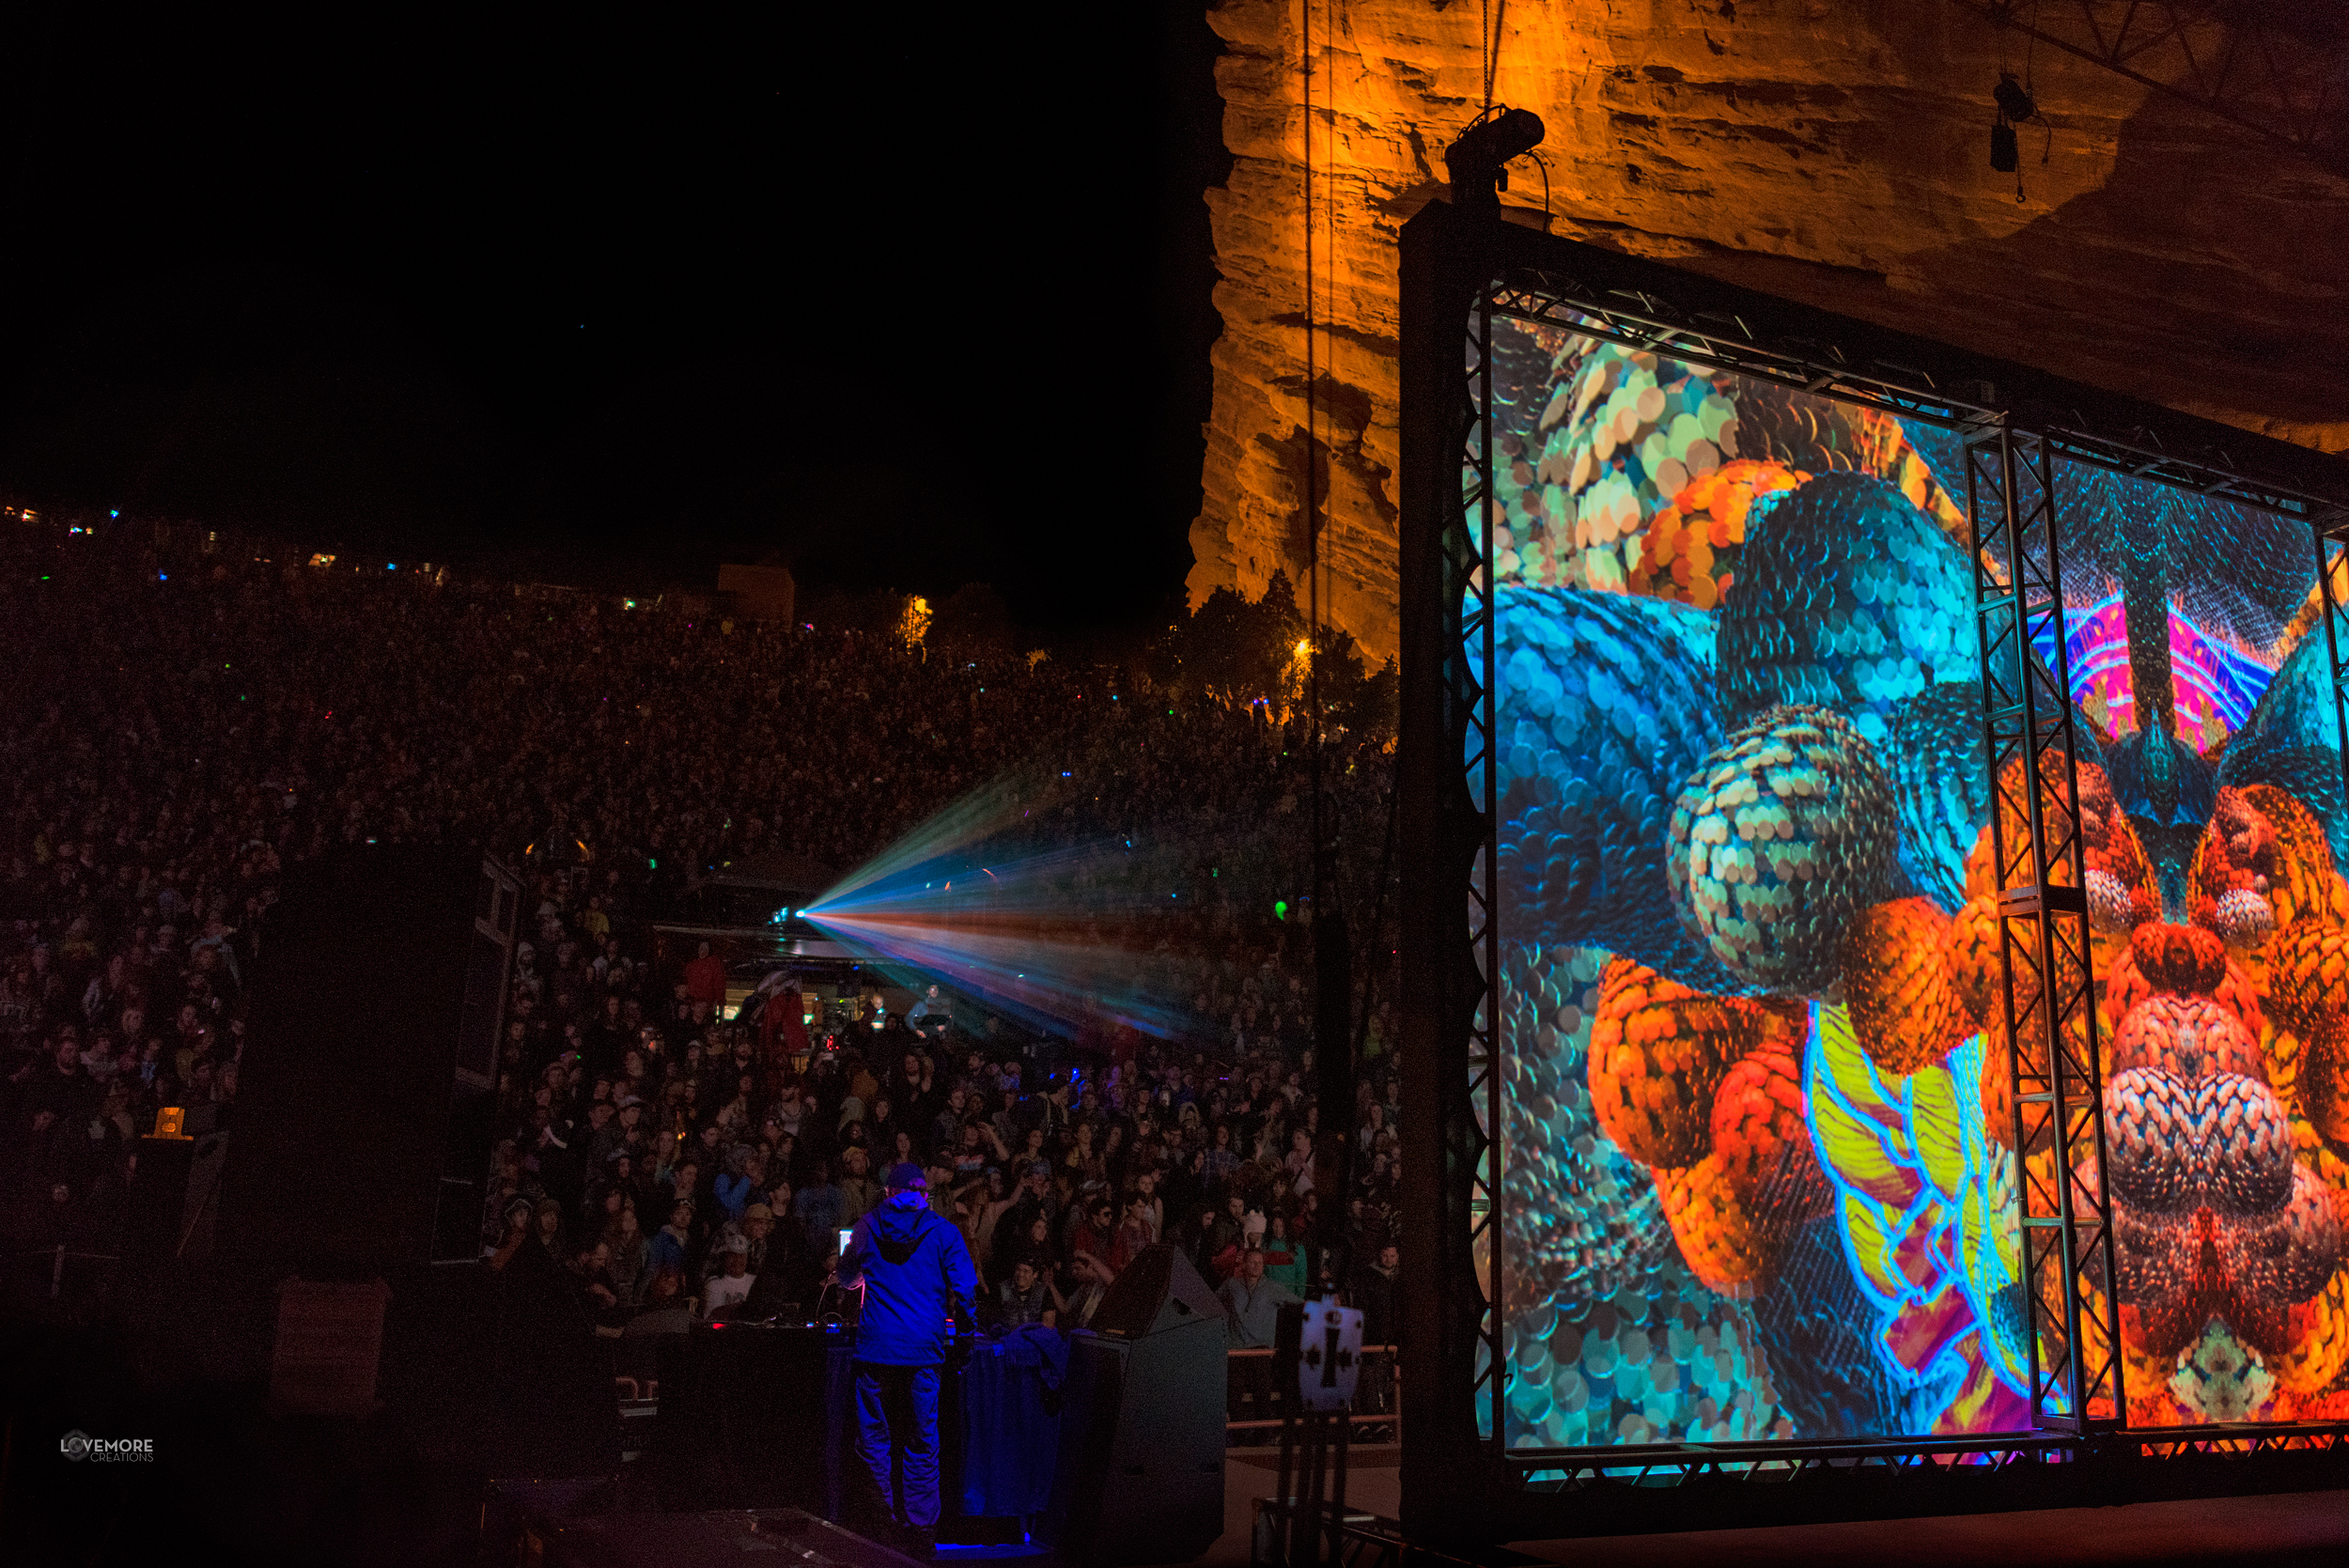 andoid jones live visuals projections tipper ott alex grey allyson grey red rocks